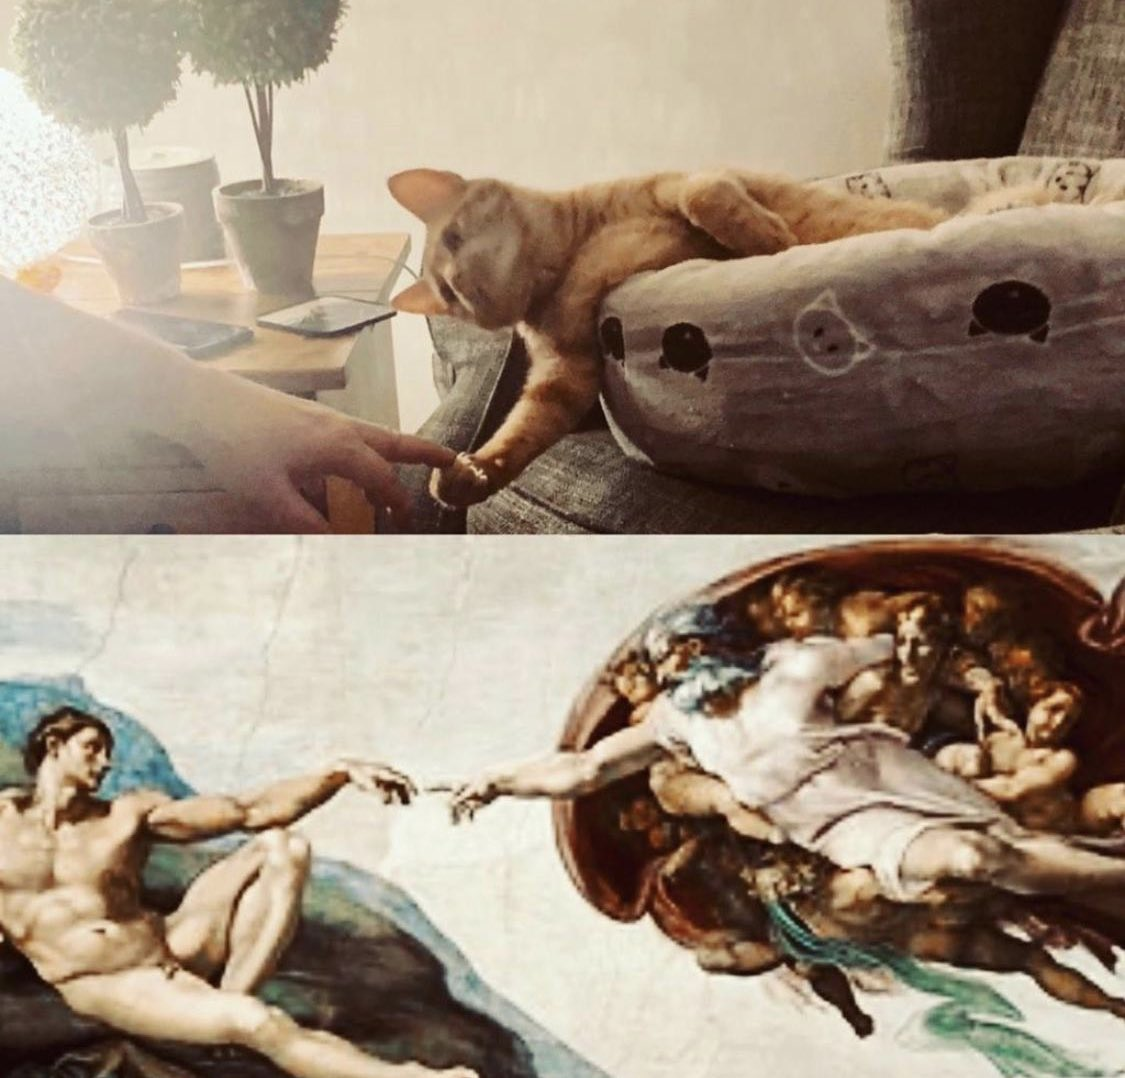 @thecatreviewer My husband and our cat Malcolm have used lockdown & recreated famous art